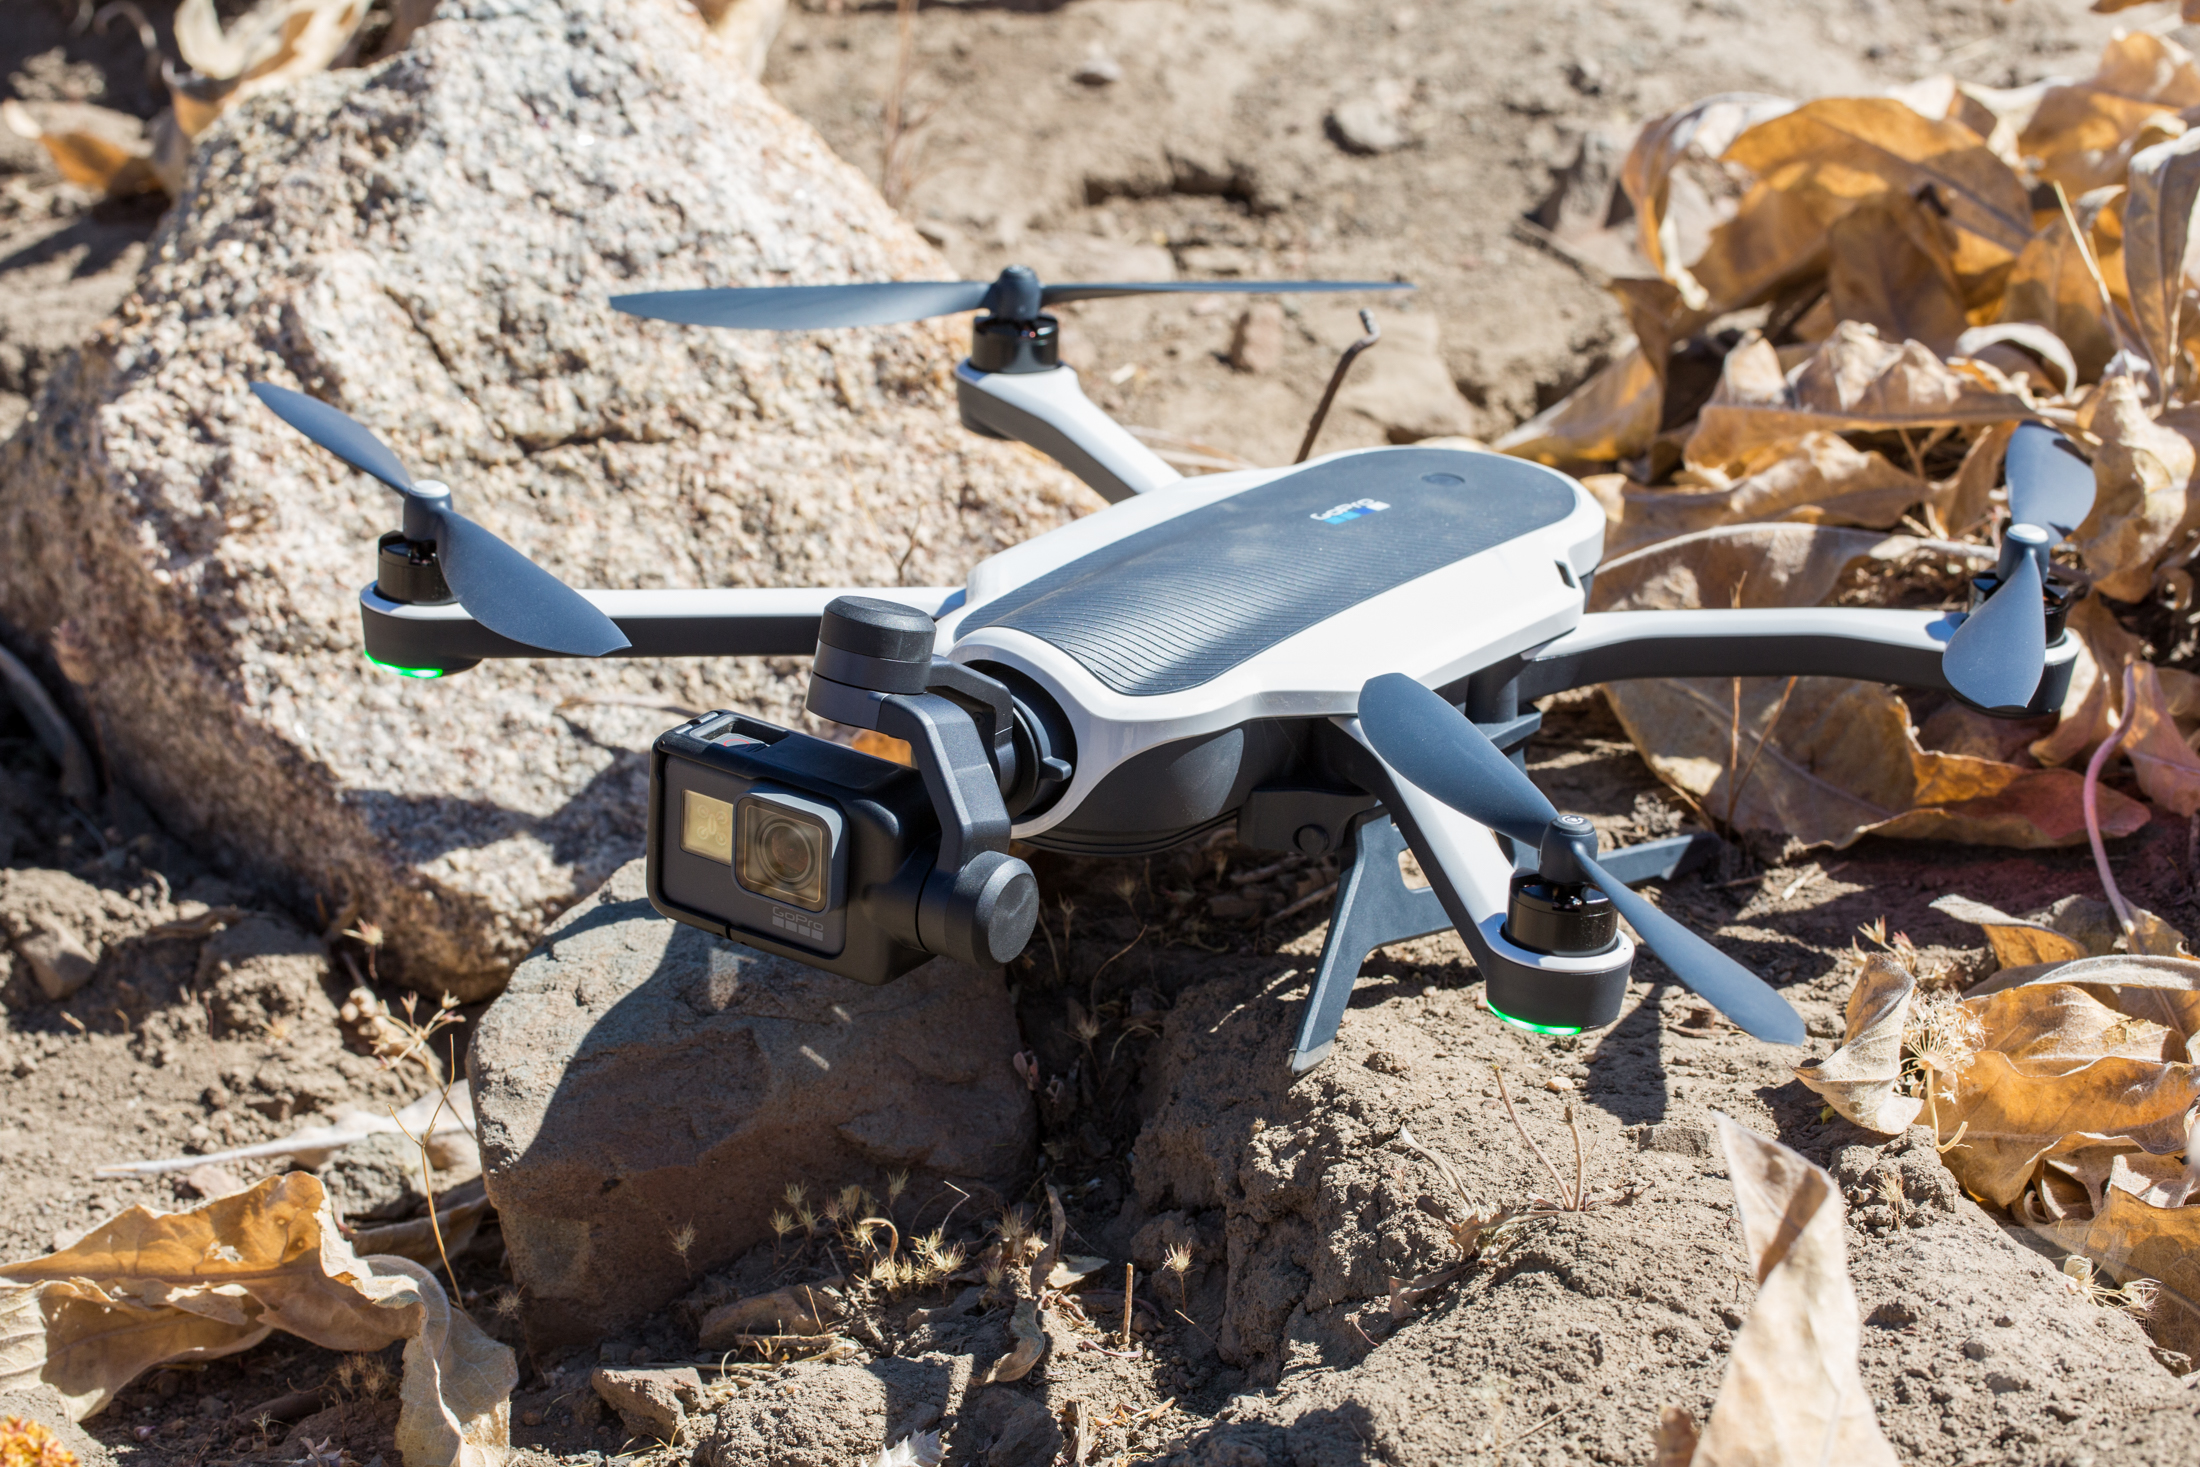 GoPro Karma and stabilizer grip in photos